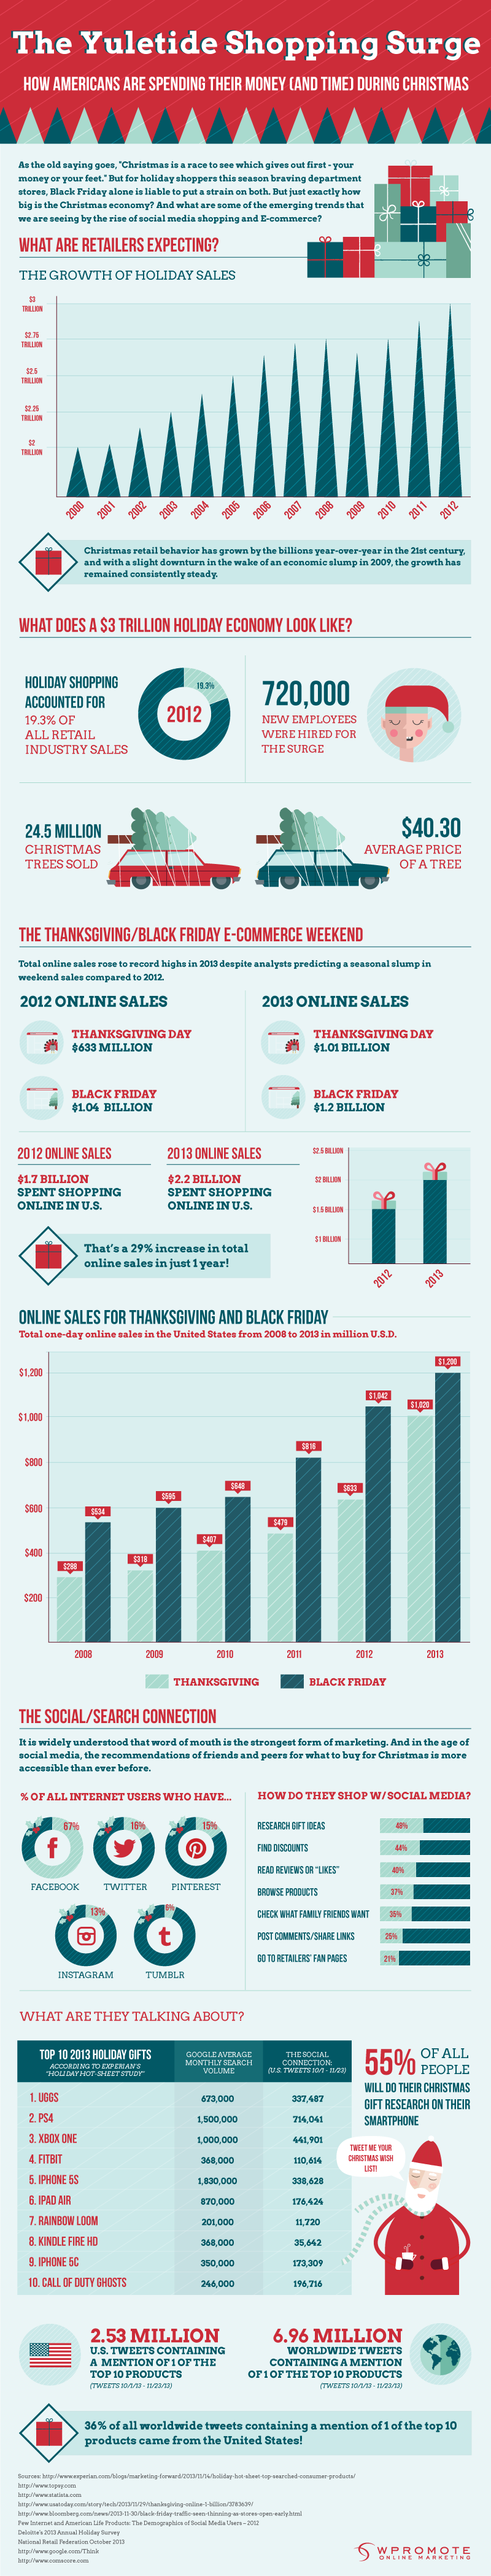 Infographic: The Yuletide Shopping Surge, How Much Are American Shoppers Spending This Year?